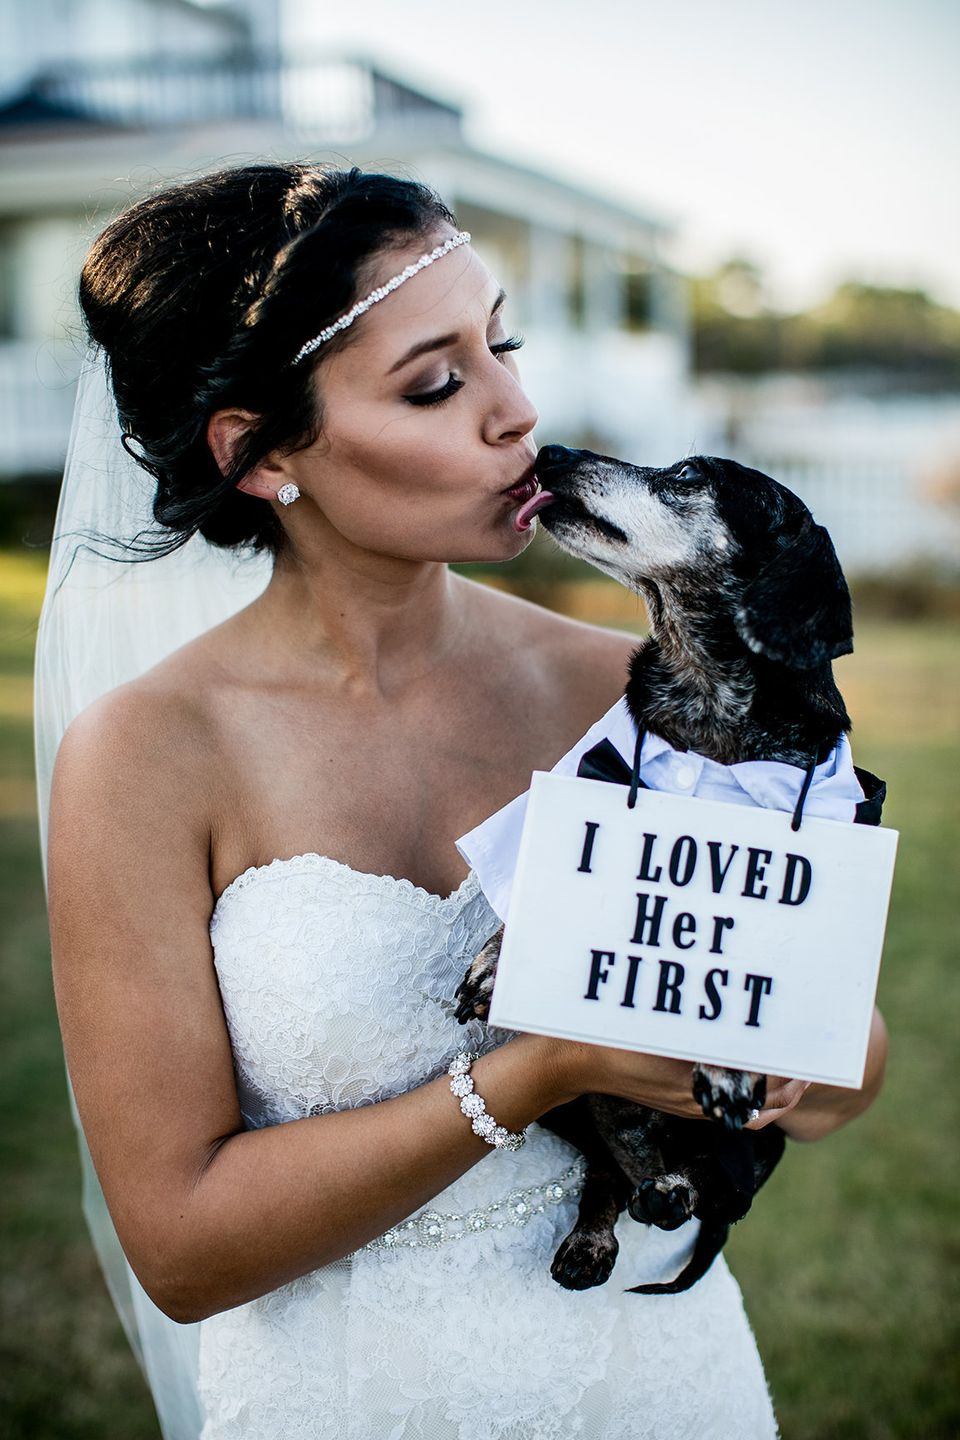 Stray Dog Crashes A Wedding And Finds His Own Happily Ever After - After a stray dog crashed their wedding this couple had the best reaction ever